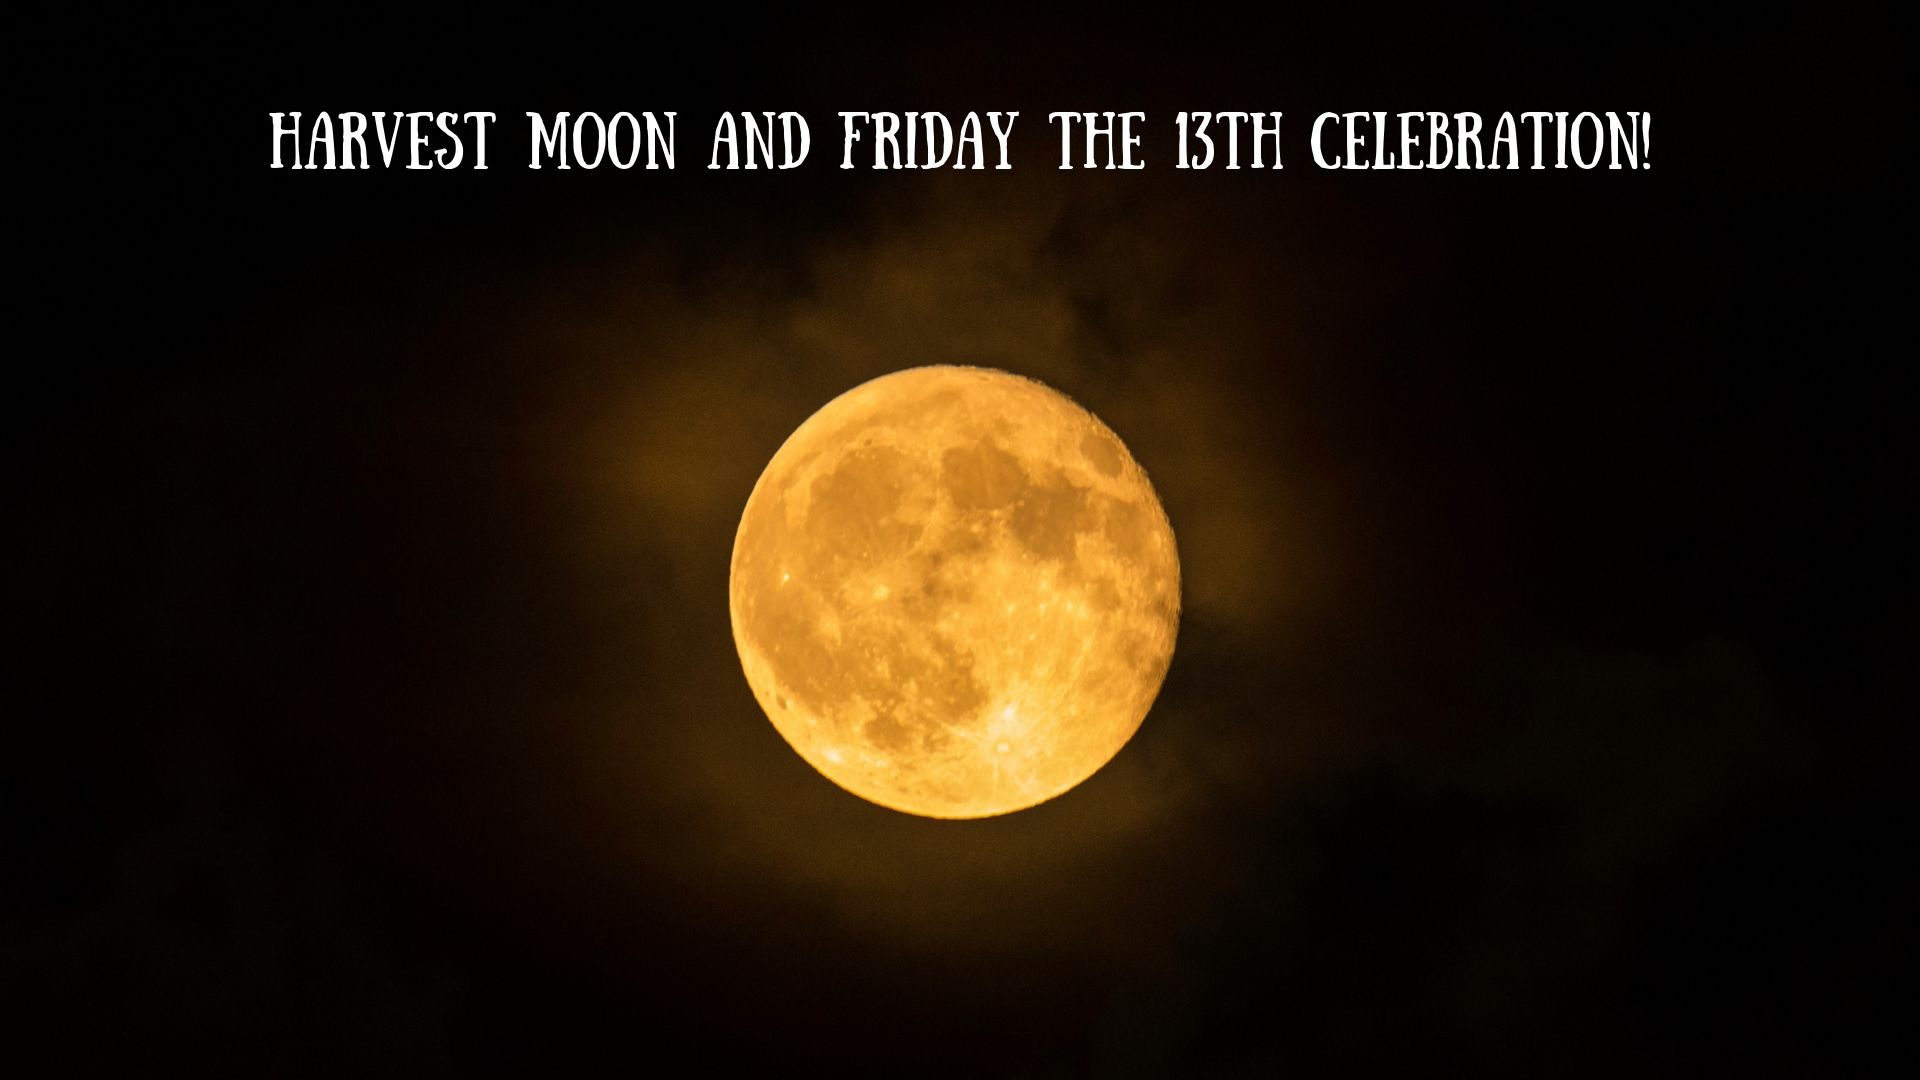 Harvest Moon and Friday the 13th Celebration! FB Event Cover 8.6.19.jpg